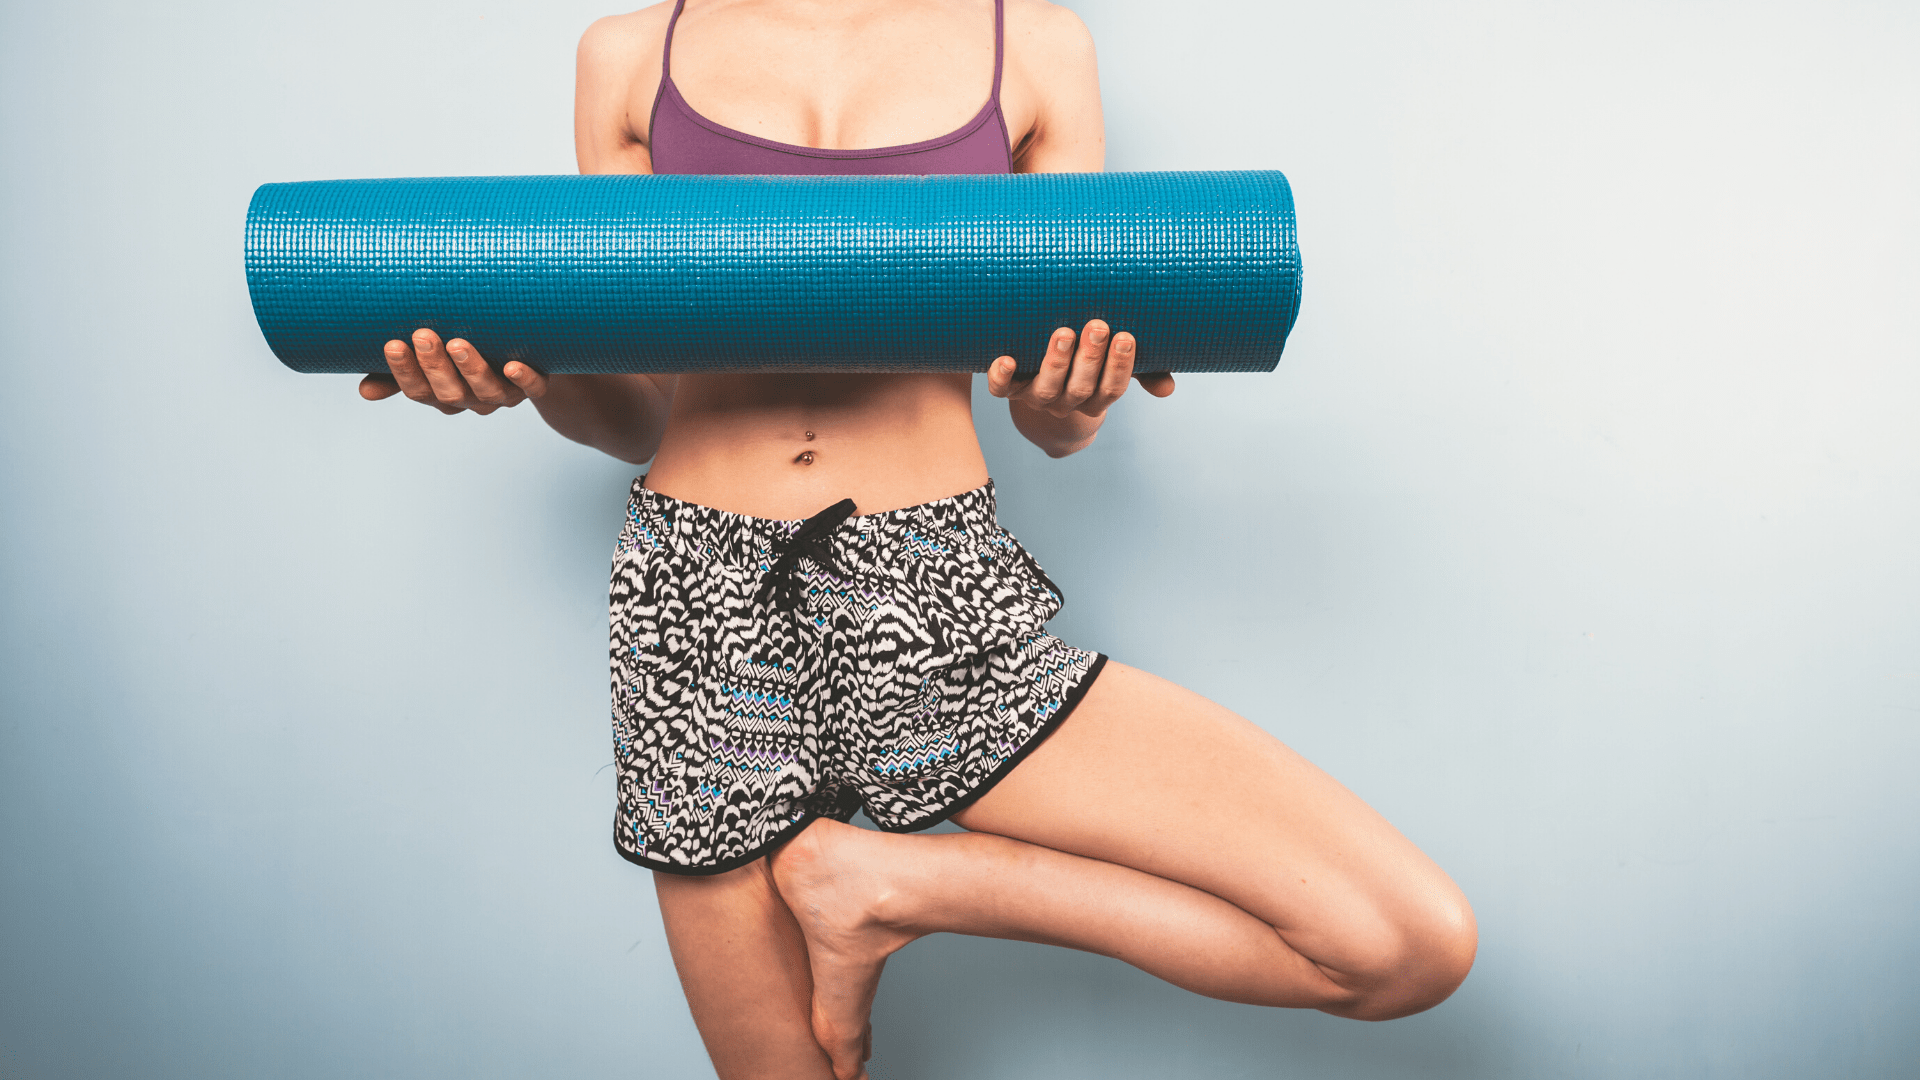 Yoga Mats: What are they, and do you need one?